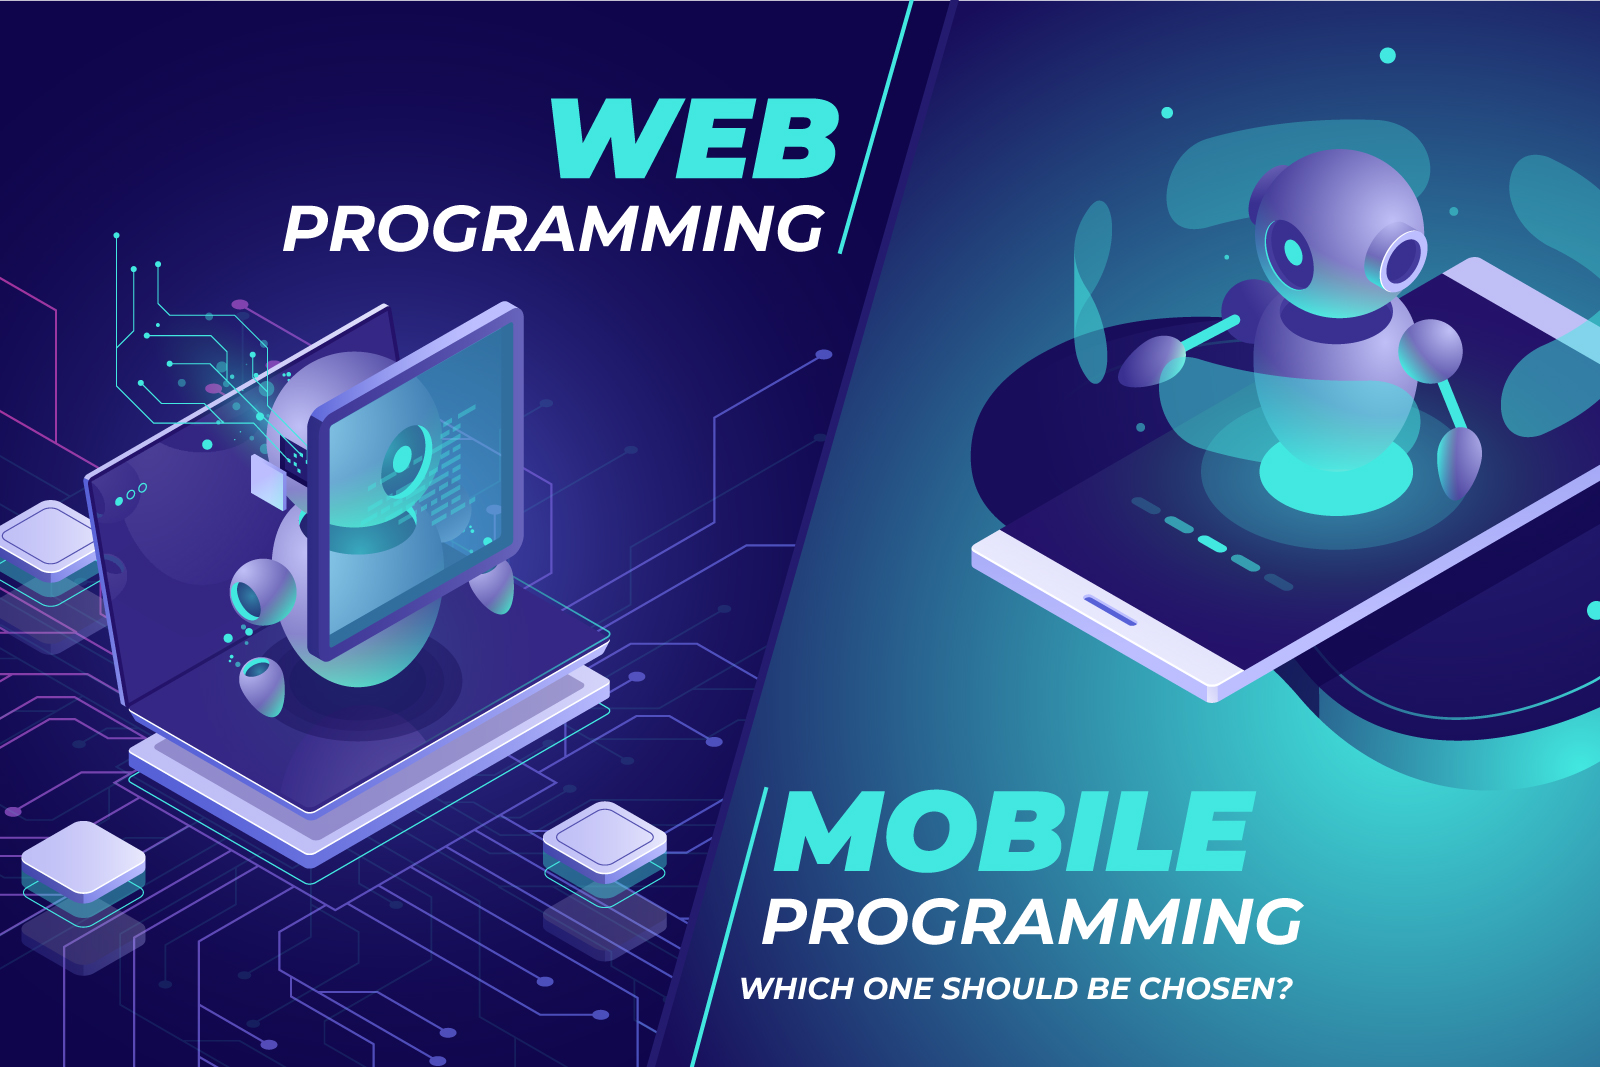 Mobile programming or web programming: Which one should be chosen?